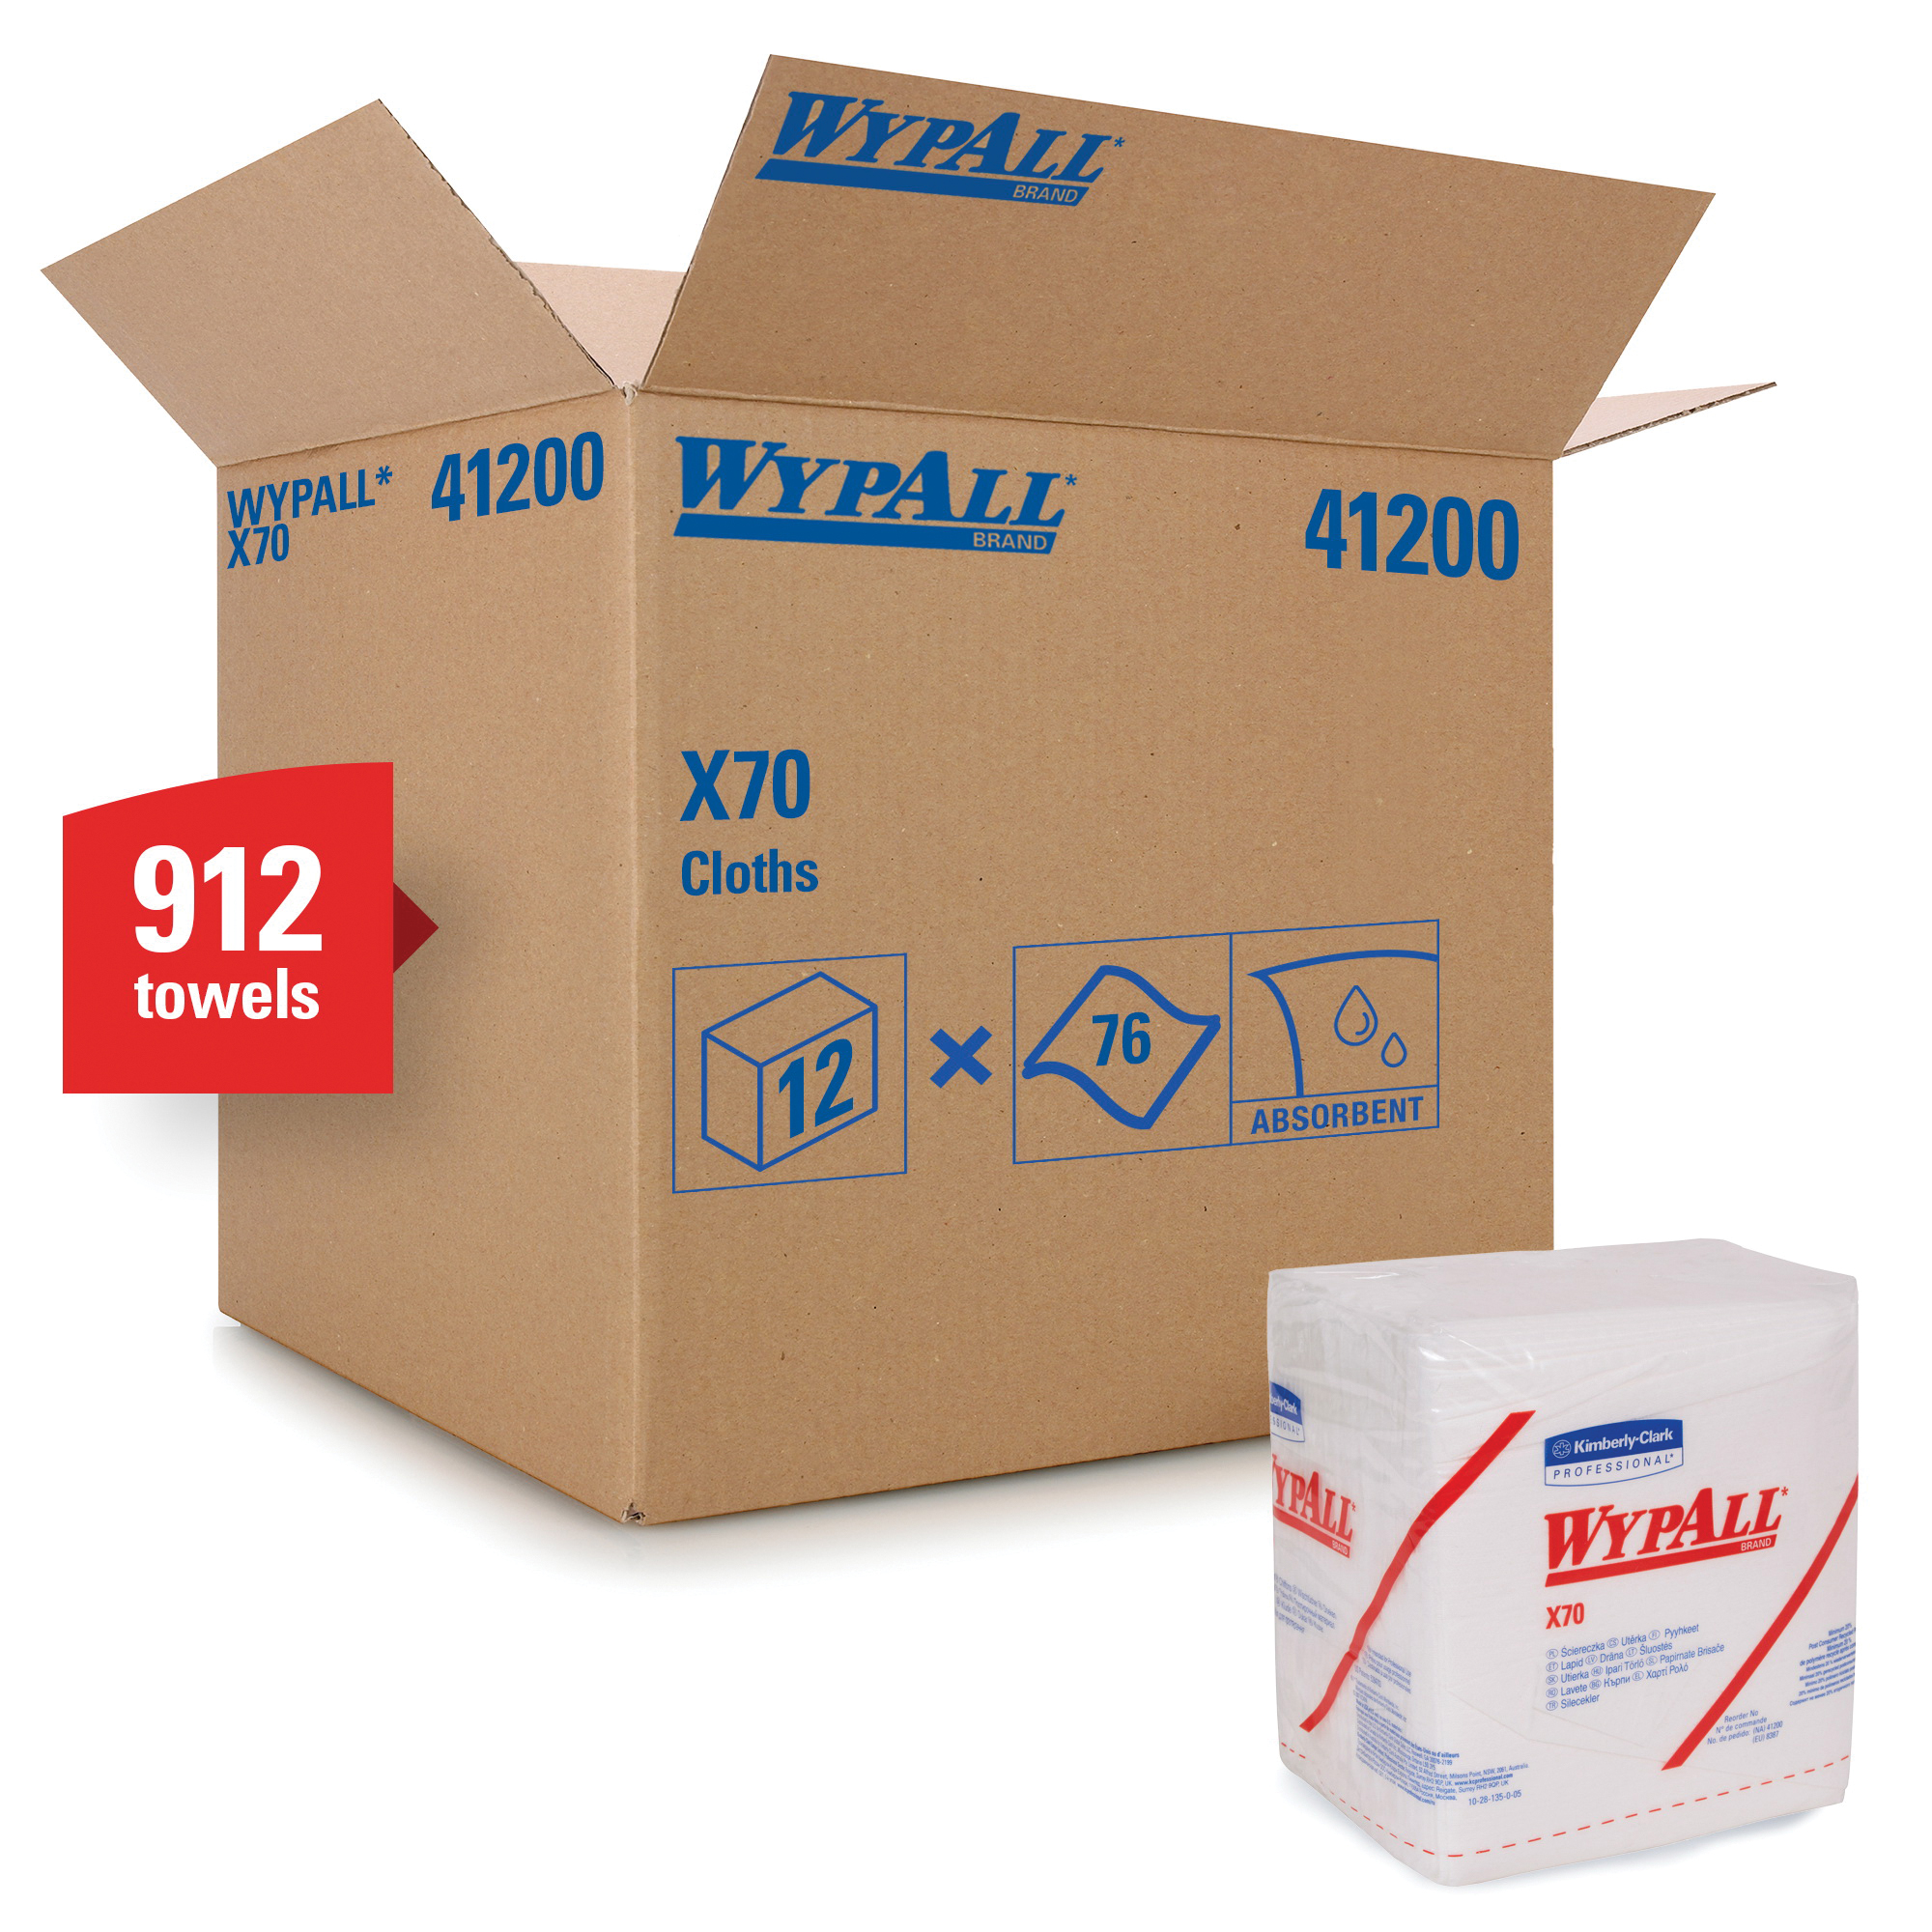 WypAll* 41300 X70 Heavy Duty Industrial Disposable Wiper, 152 Wipes, Hydroknit*, White